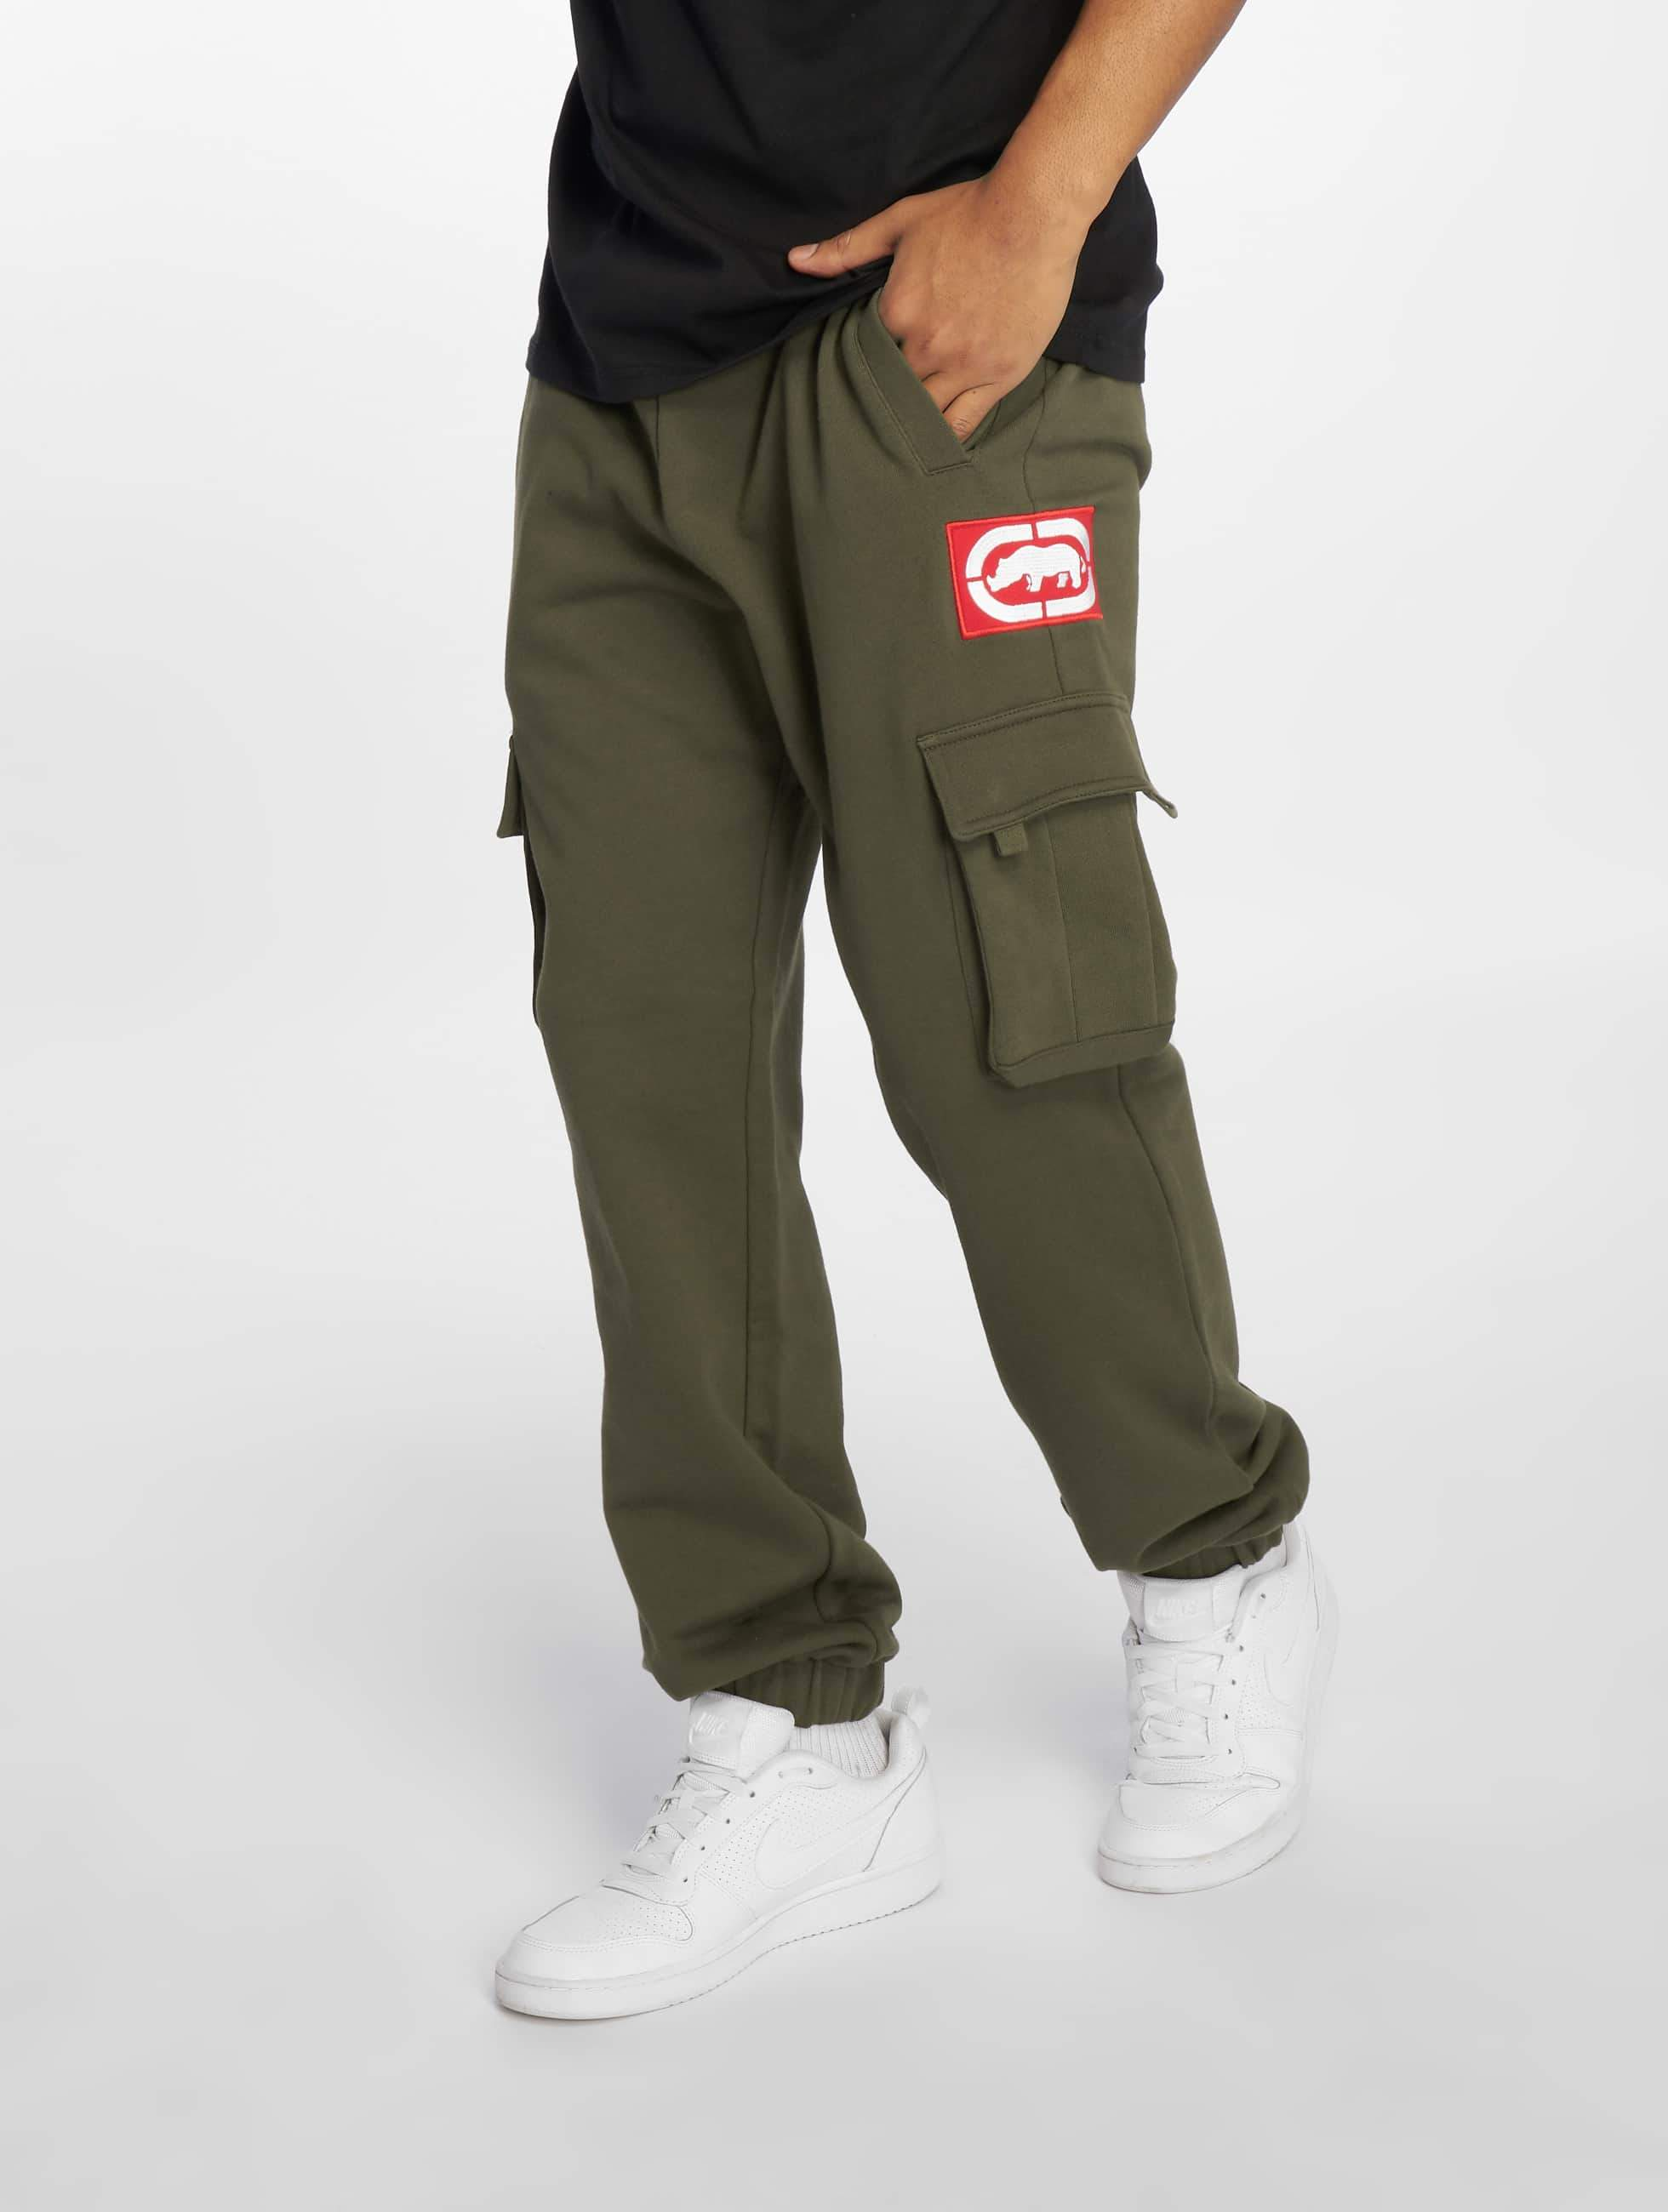 Ecko Unltd. / Sweat Pant Inglewood in olive S